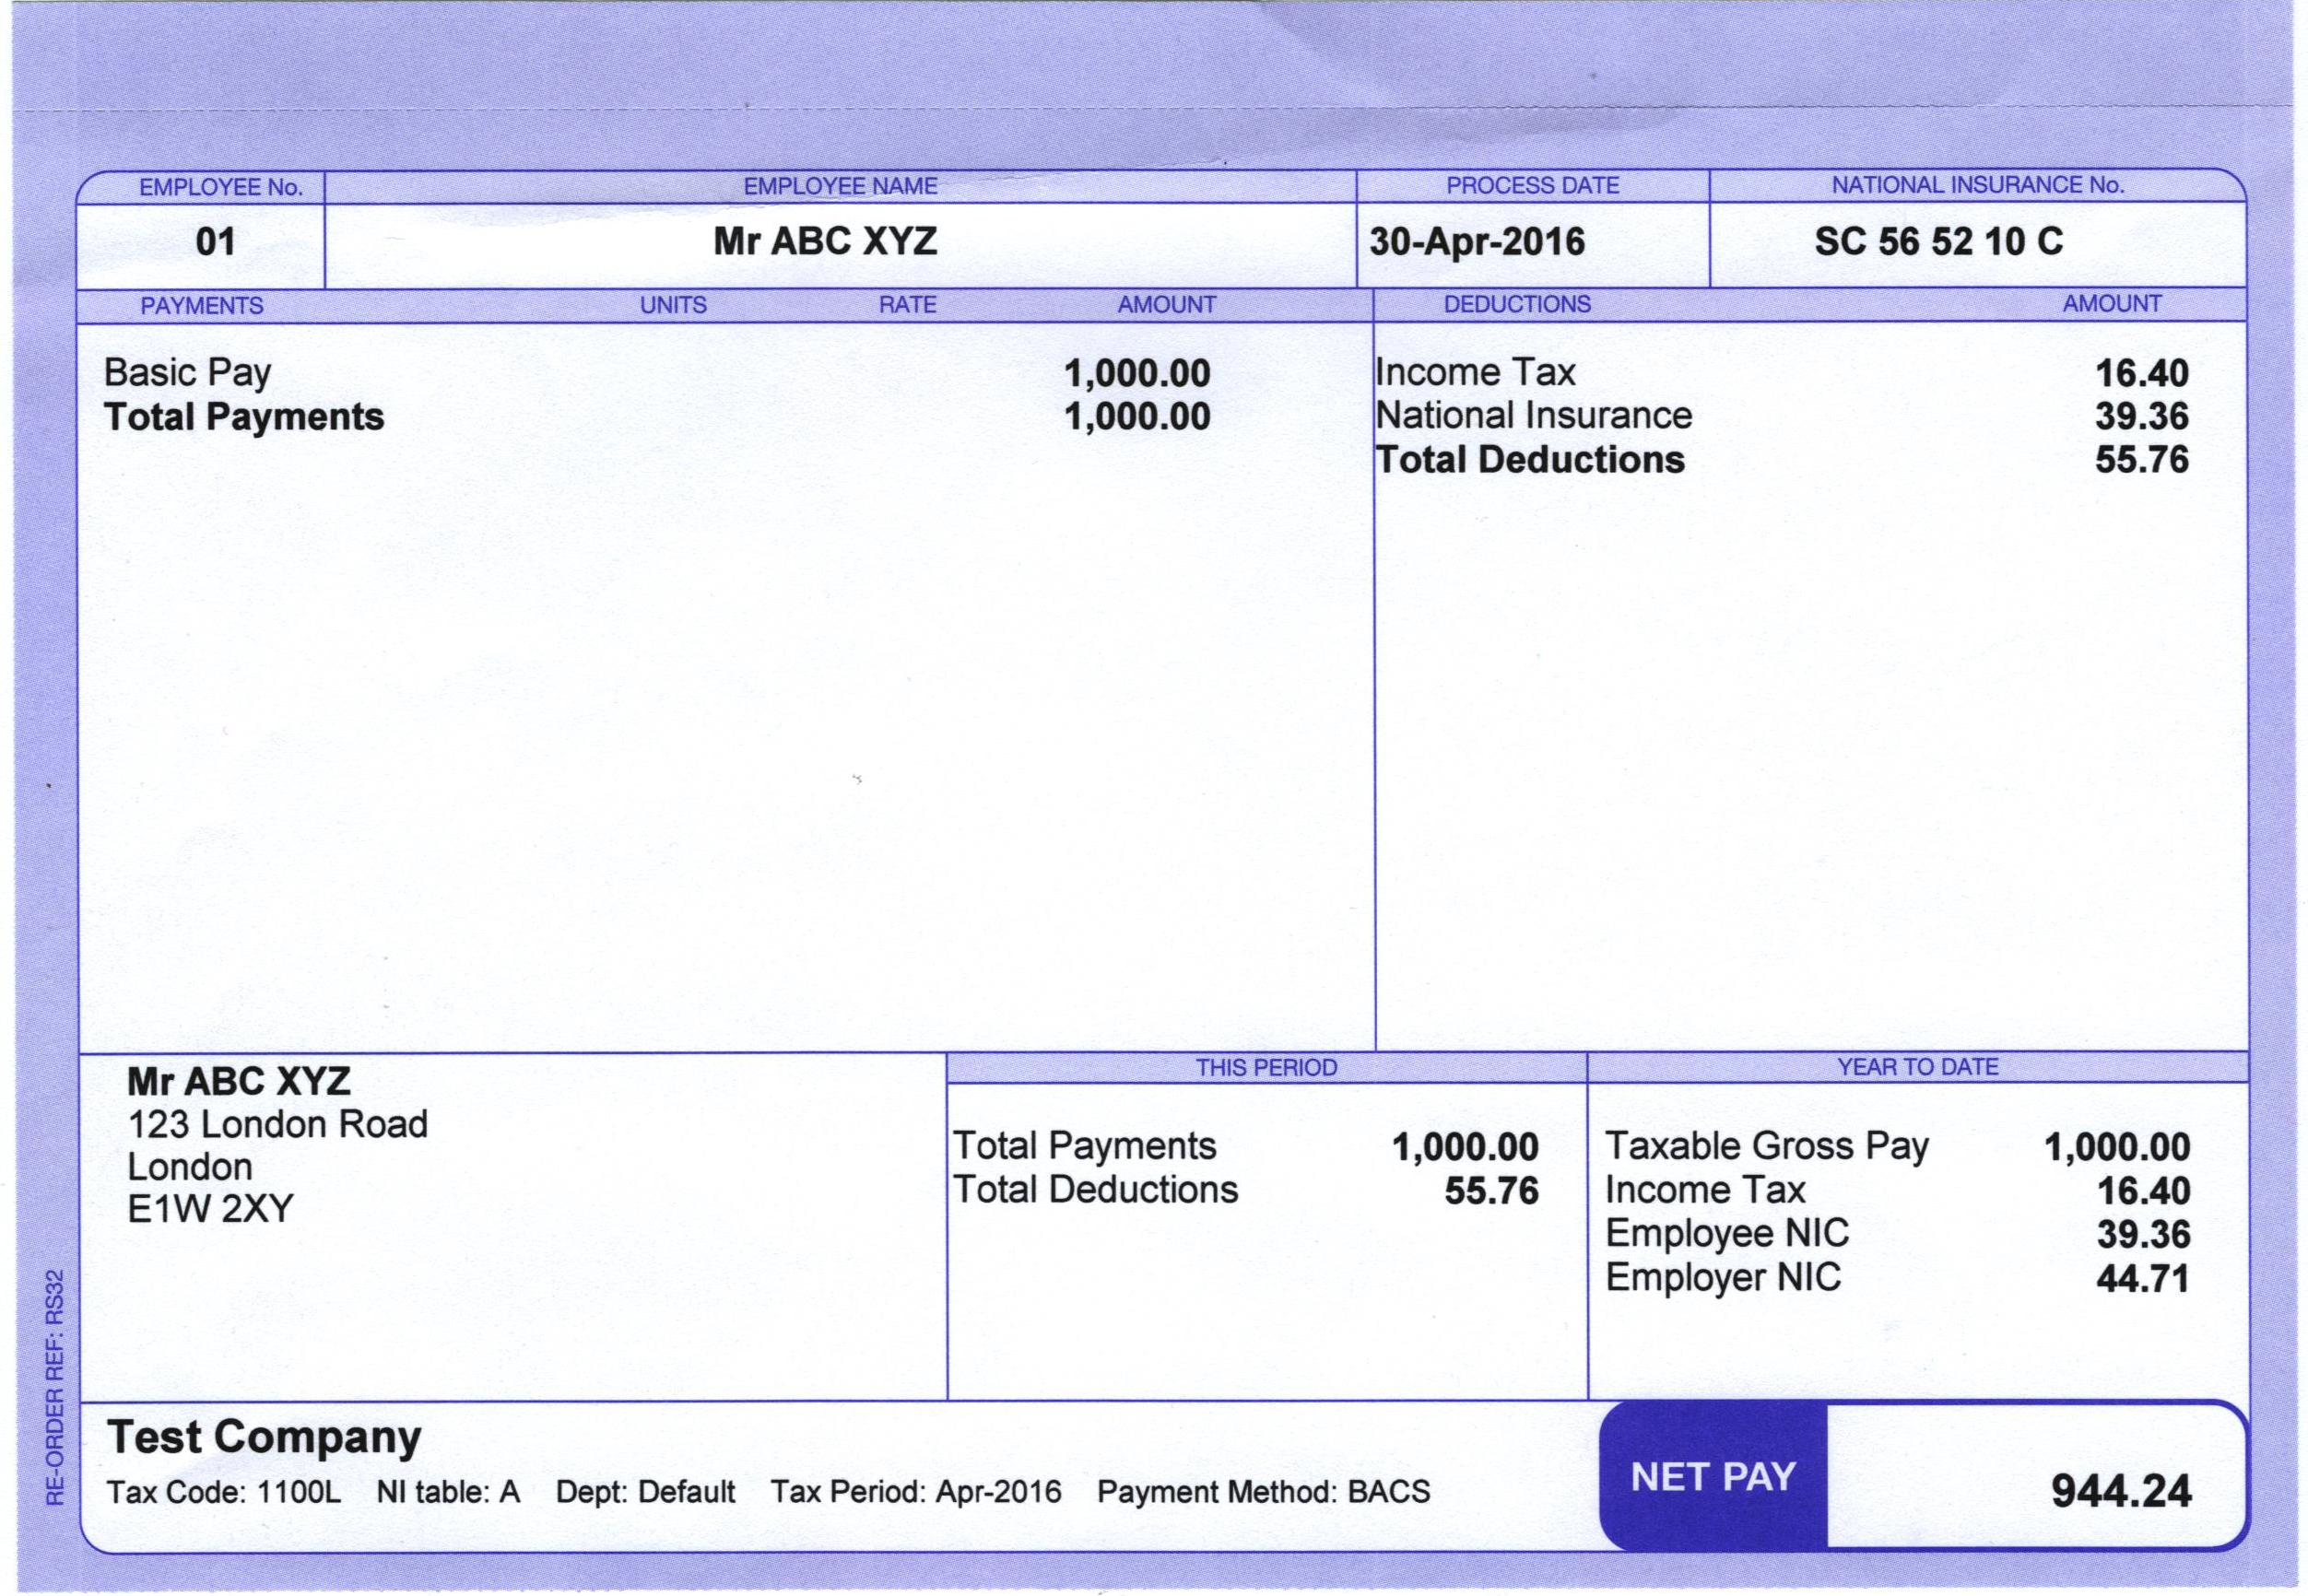 Do You Have Payslips if You Didn't have then Please